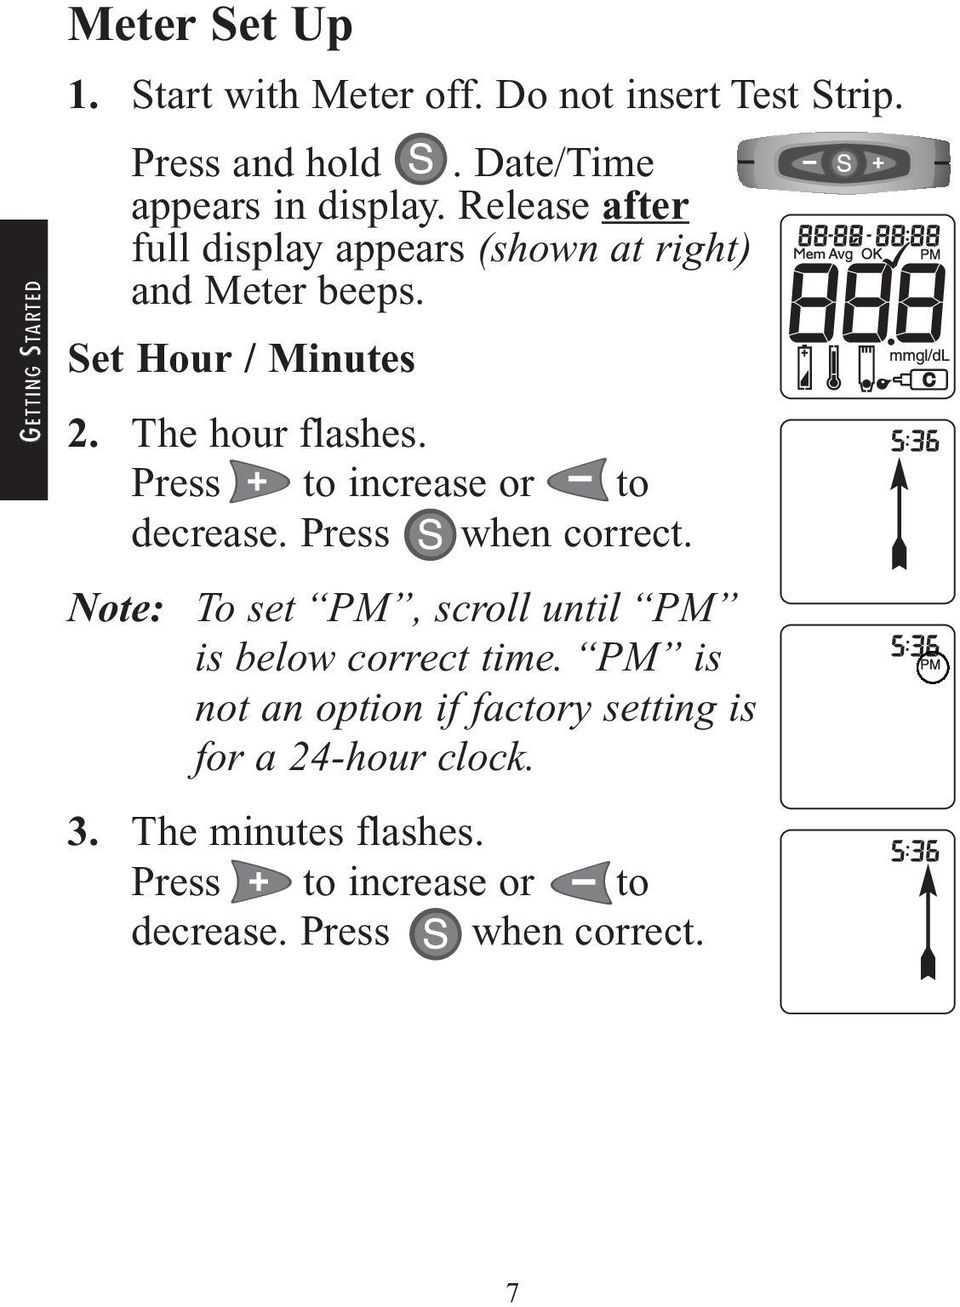 The hour flashes. Press to increase or to decrease. Press when correct.